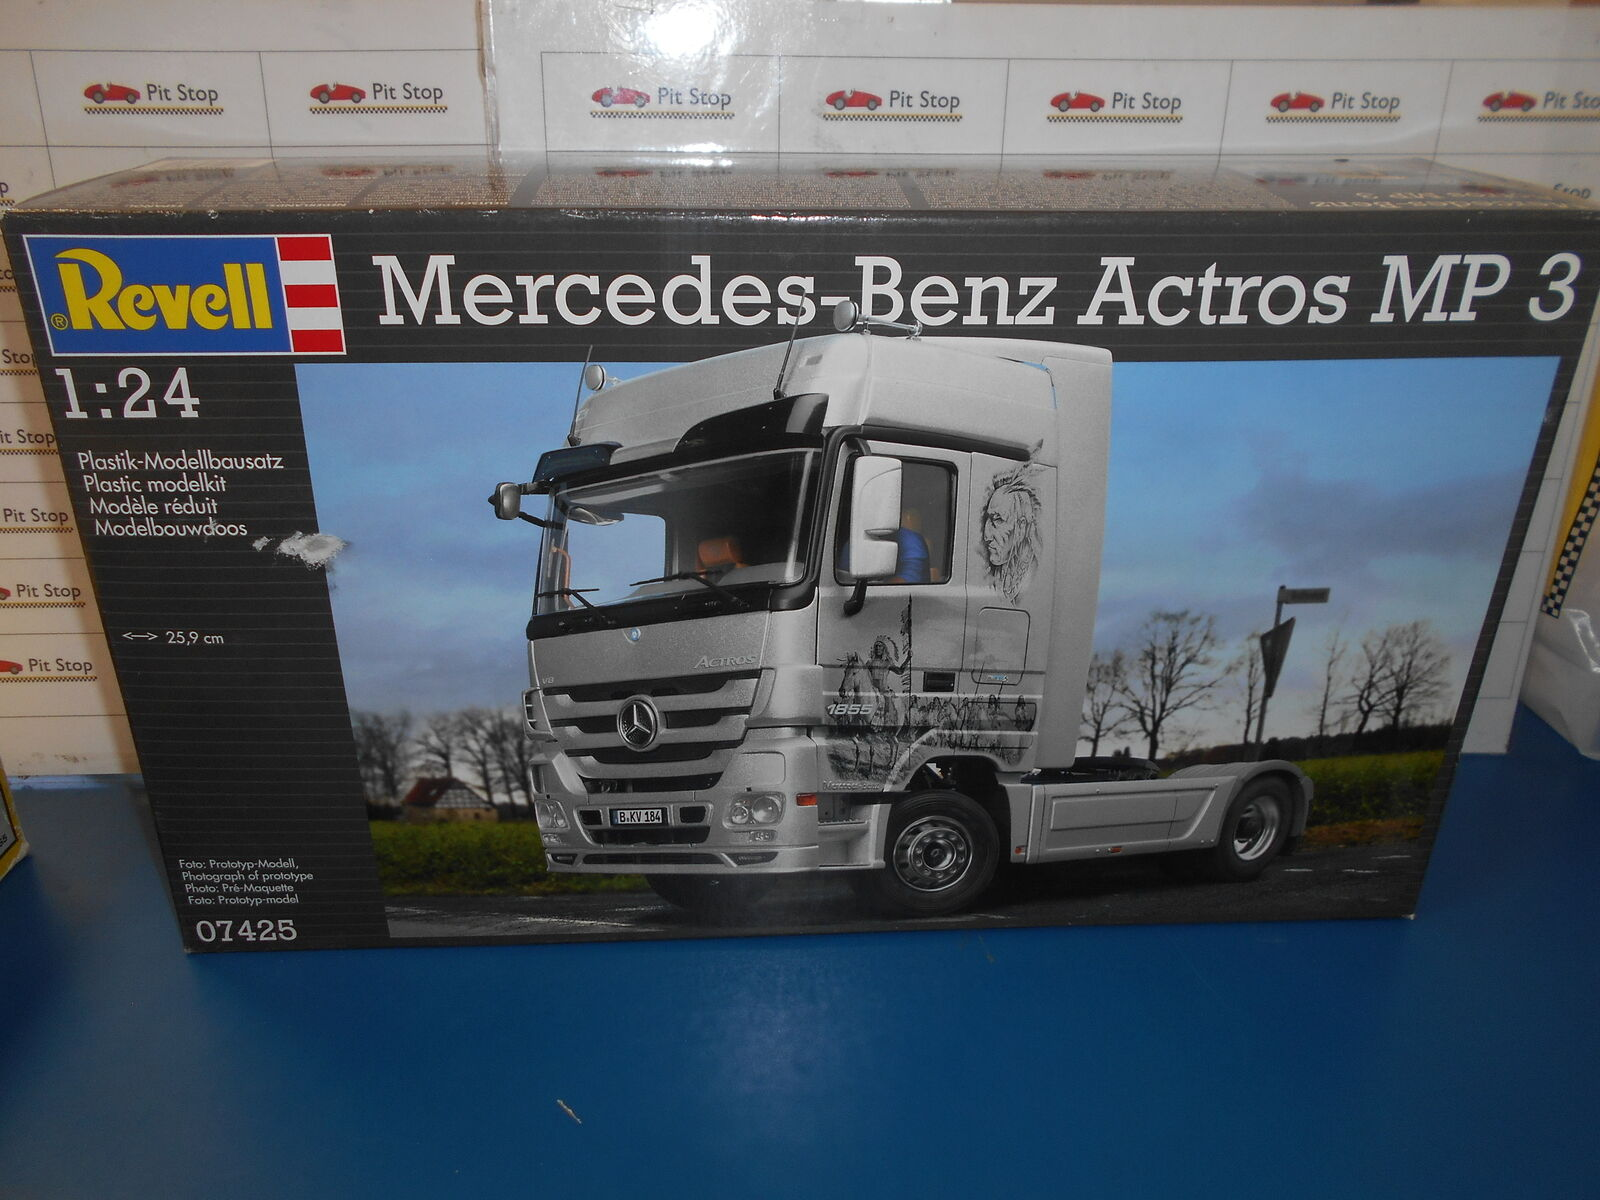 REV07425 by REVELL MERCEDES-BENZ ACTROS MP3 - KIT DI MONTAGGIO - 1 24